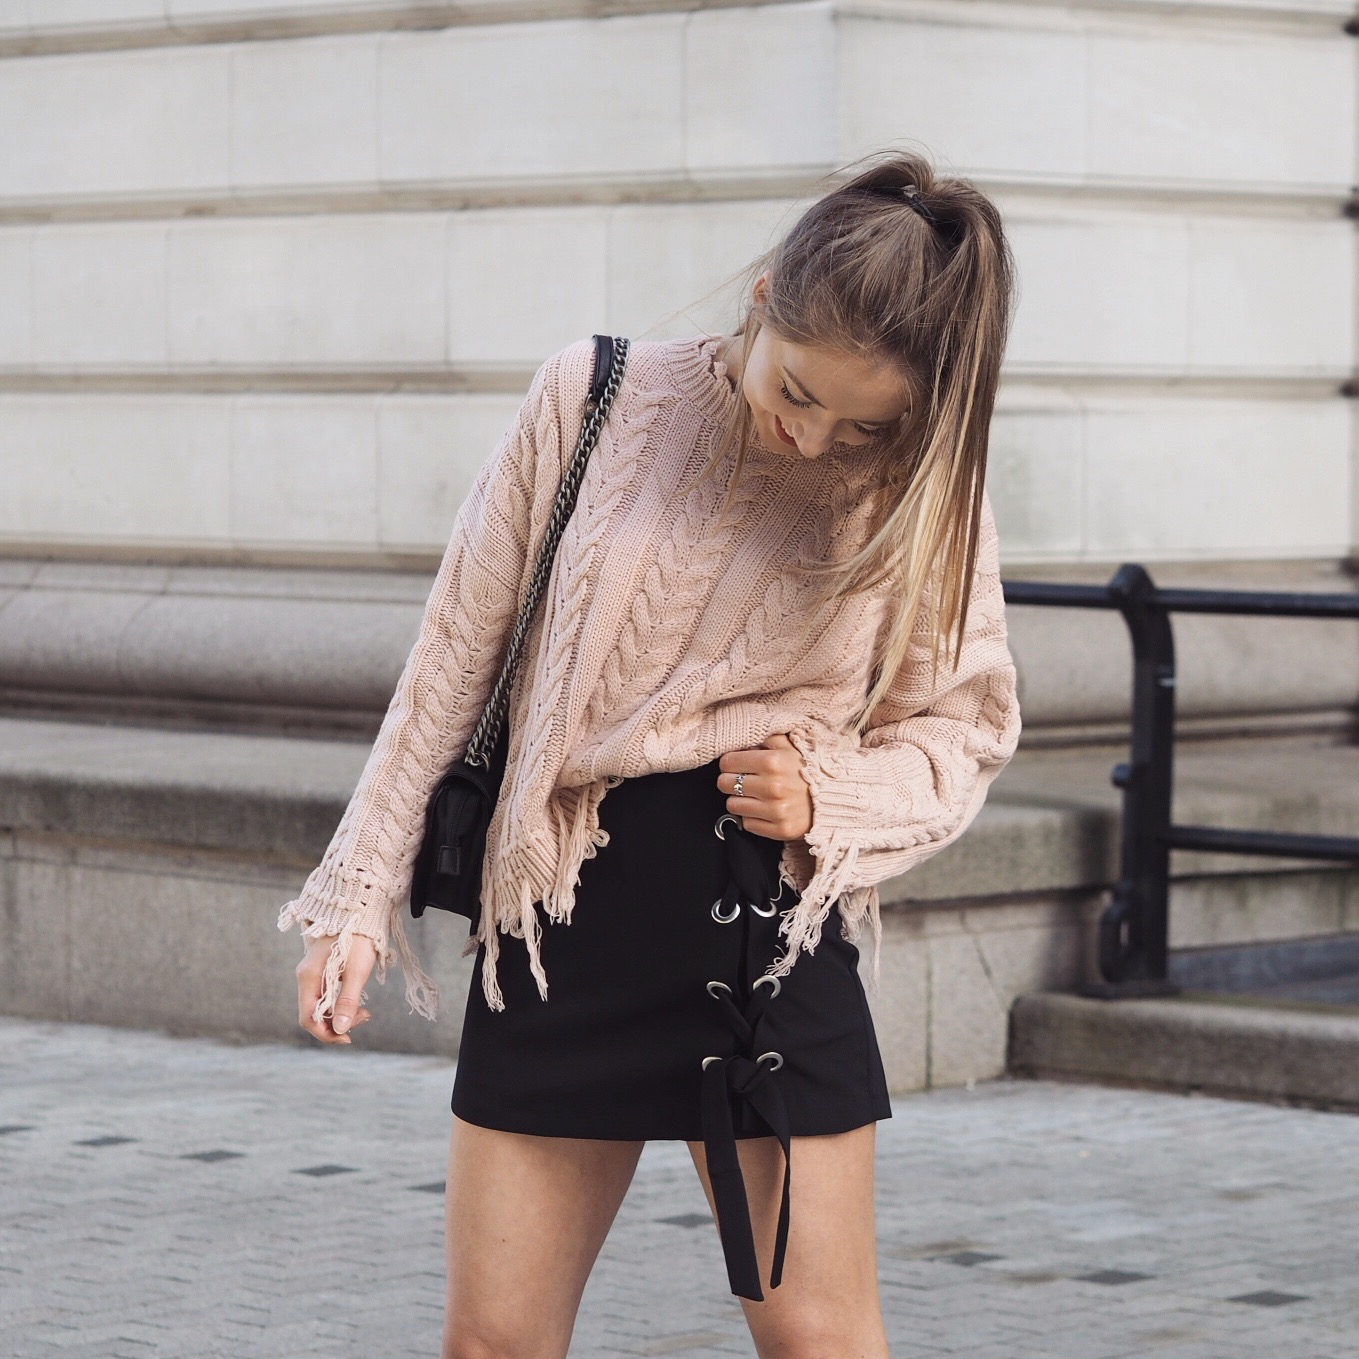 How to style a skort heading into A/W